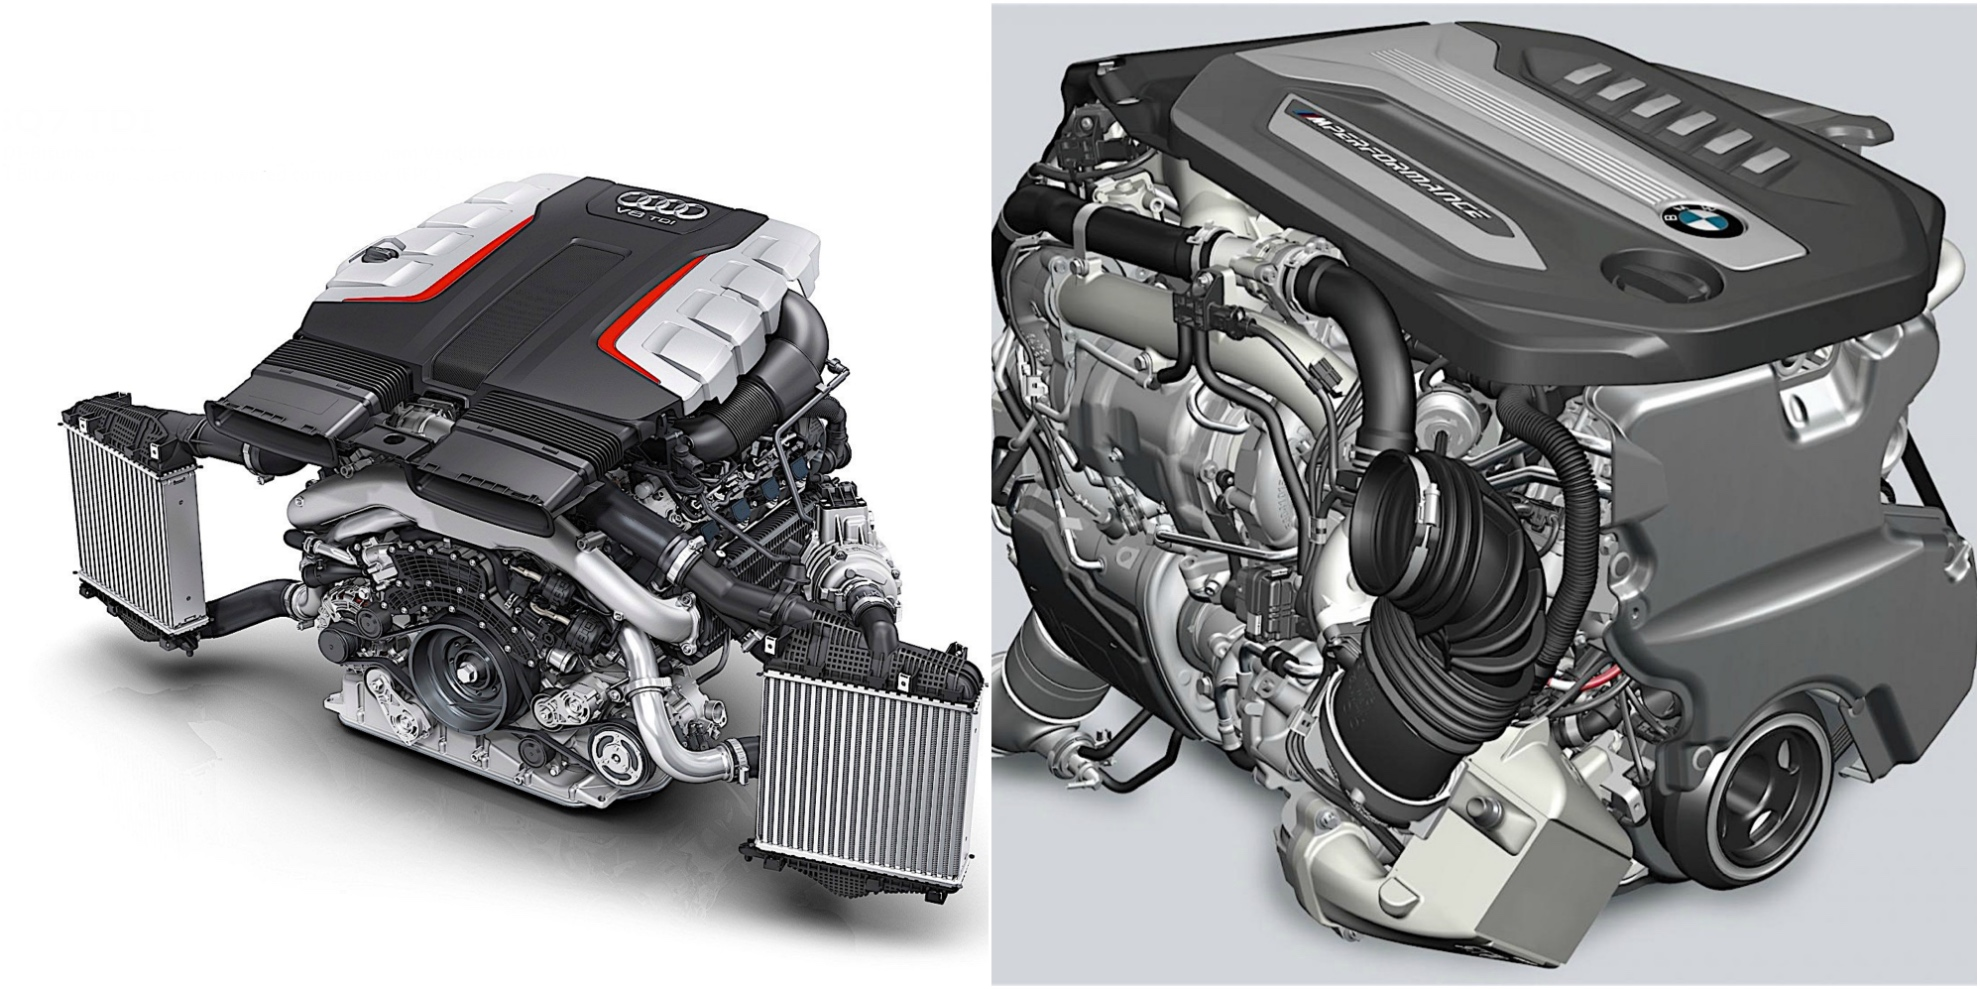 BMW Versus Audi - The Multi-Turbo Diesel Engine Battle